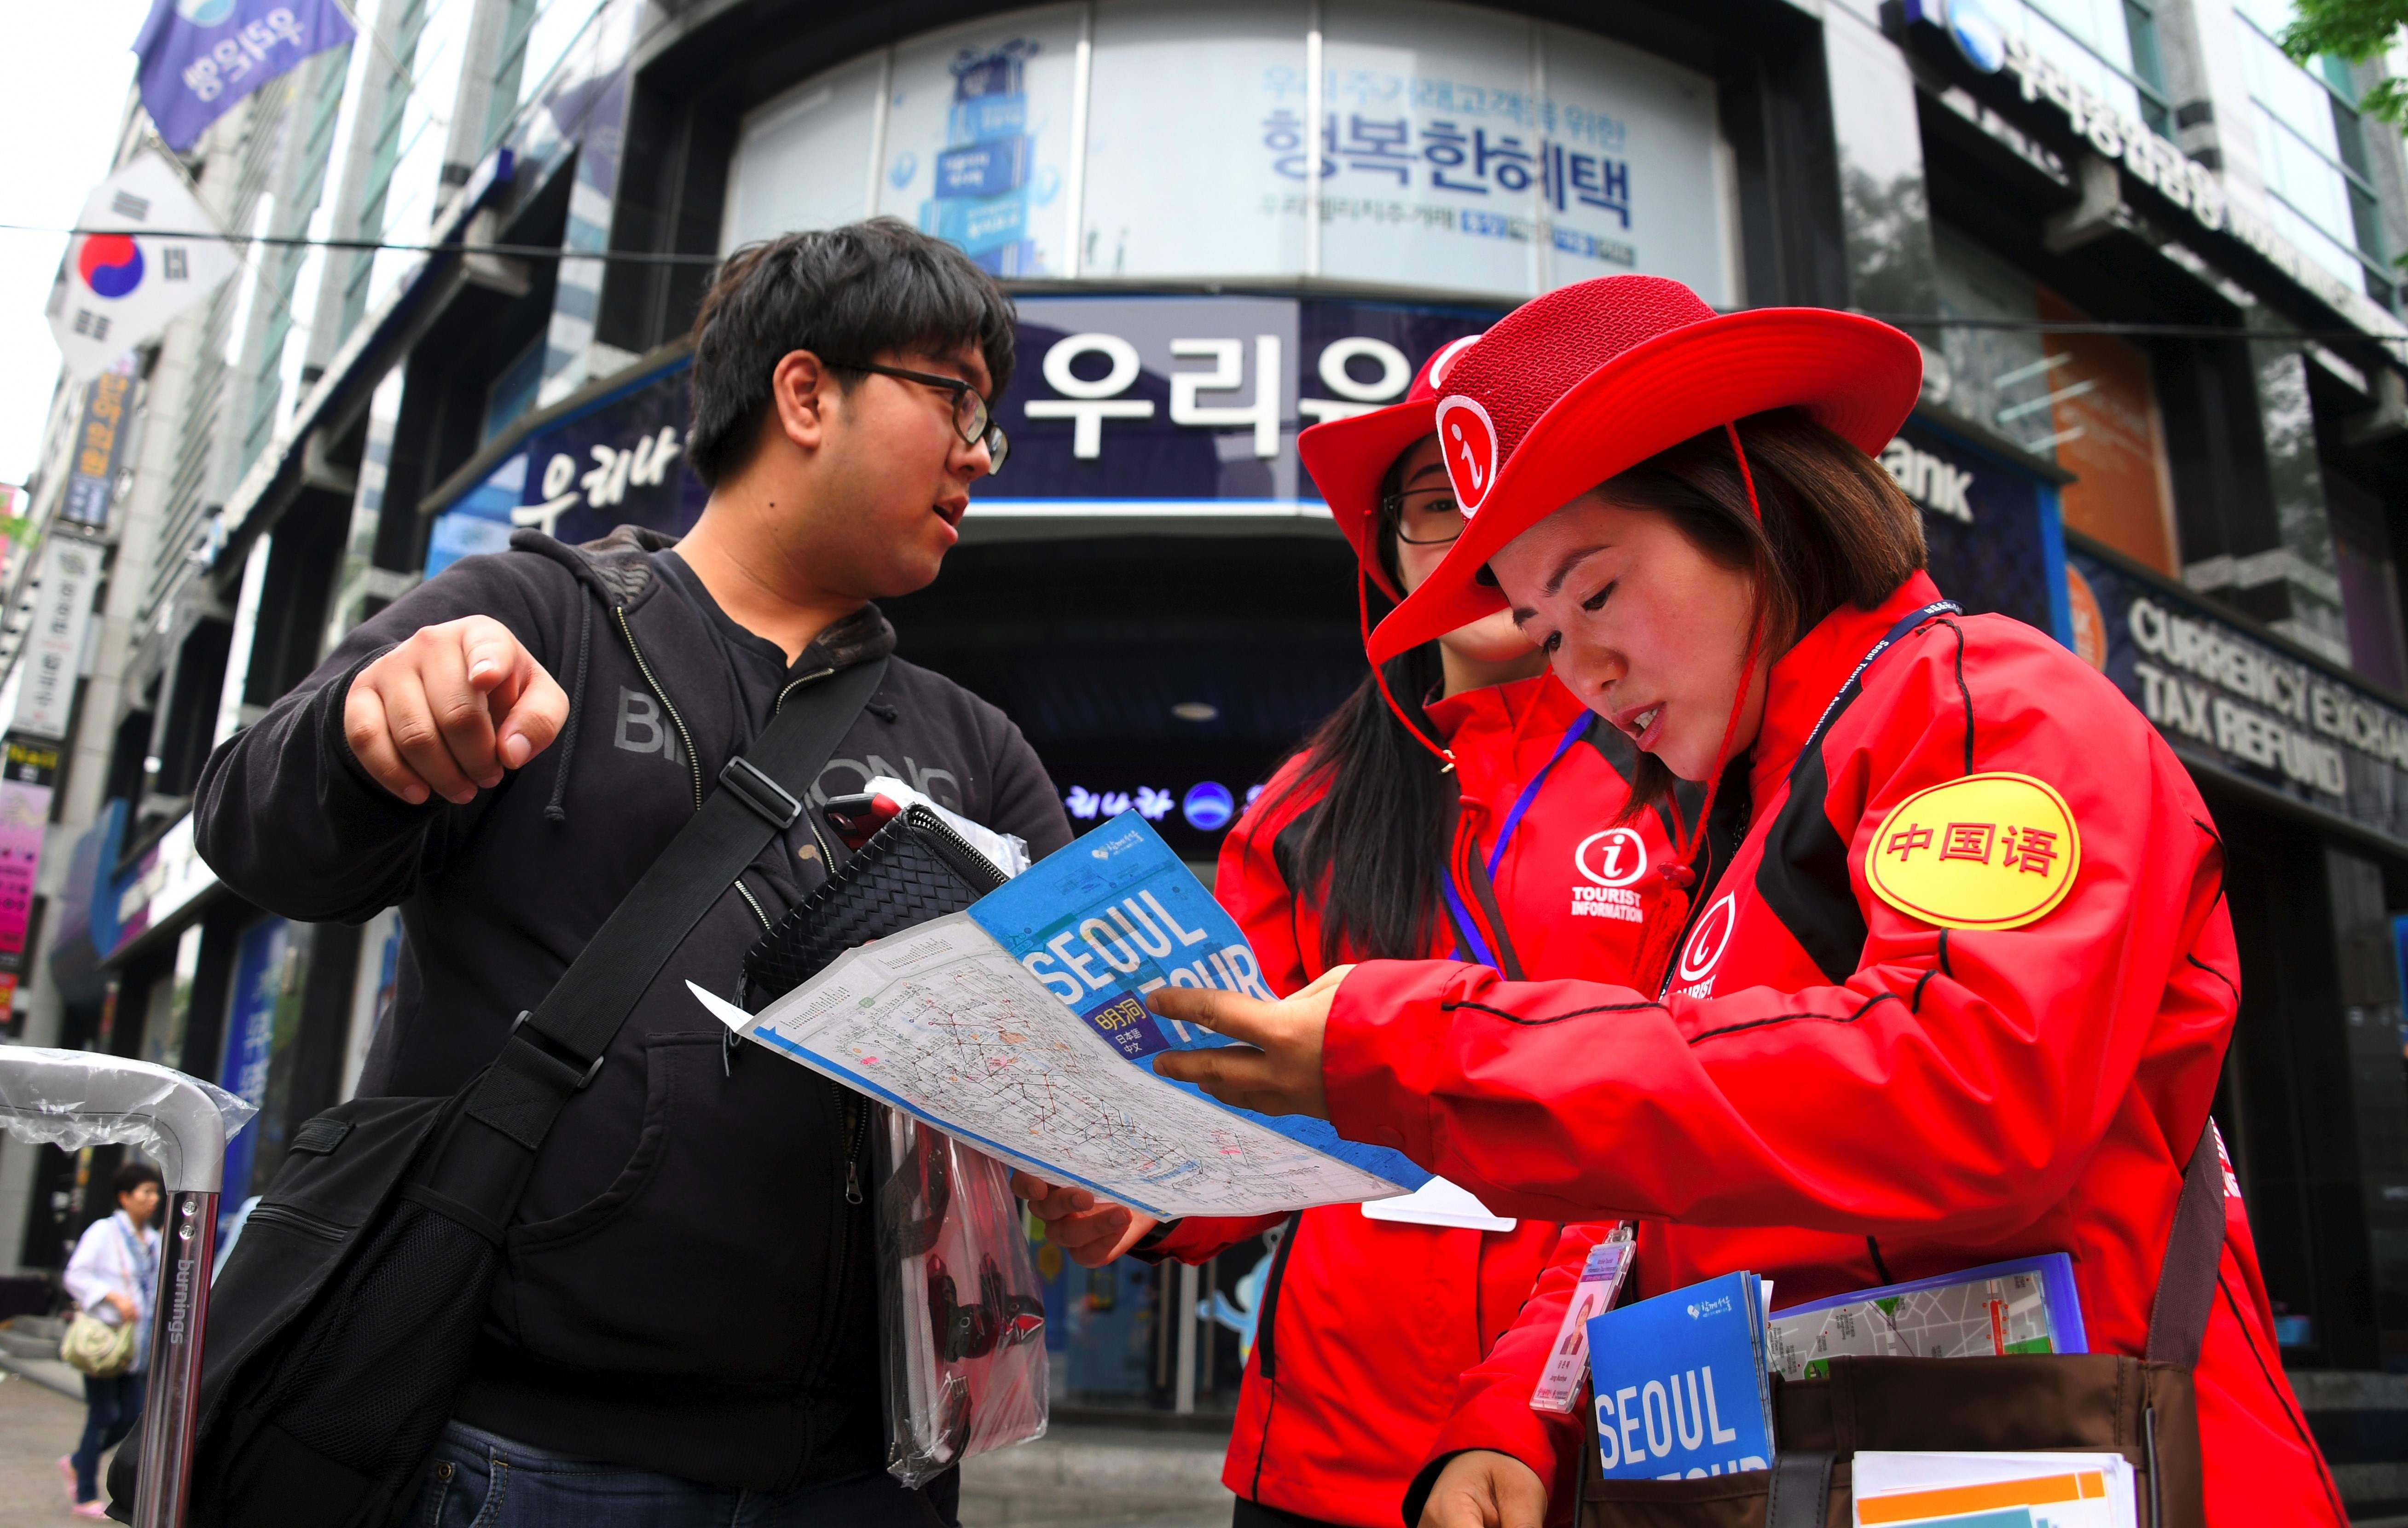 tour-guides-korea